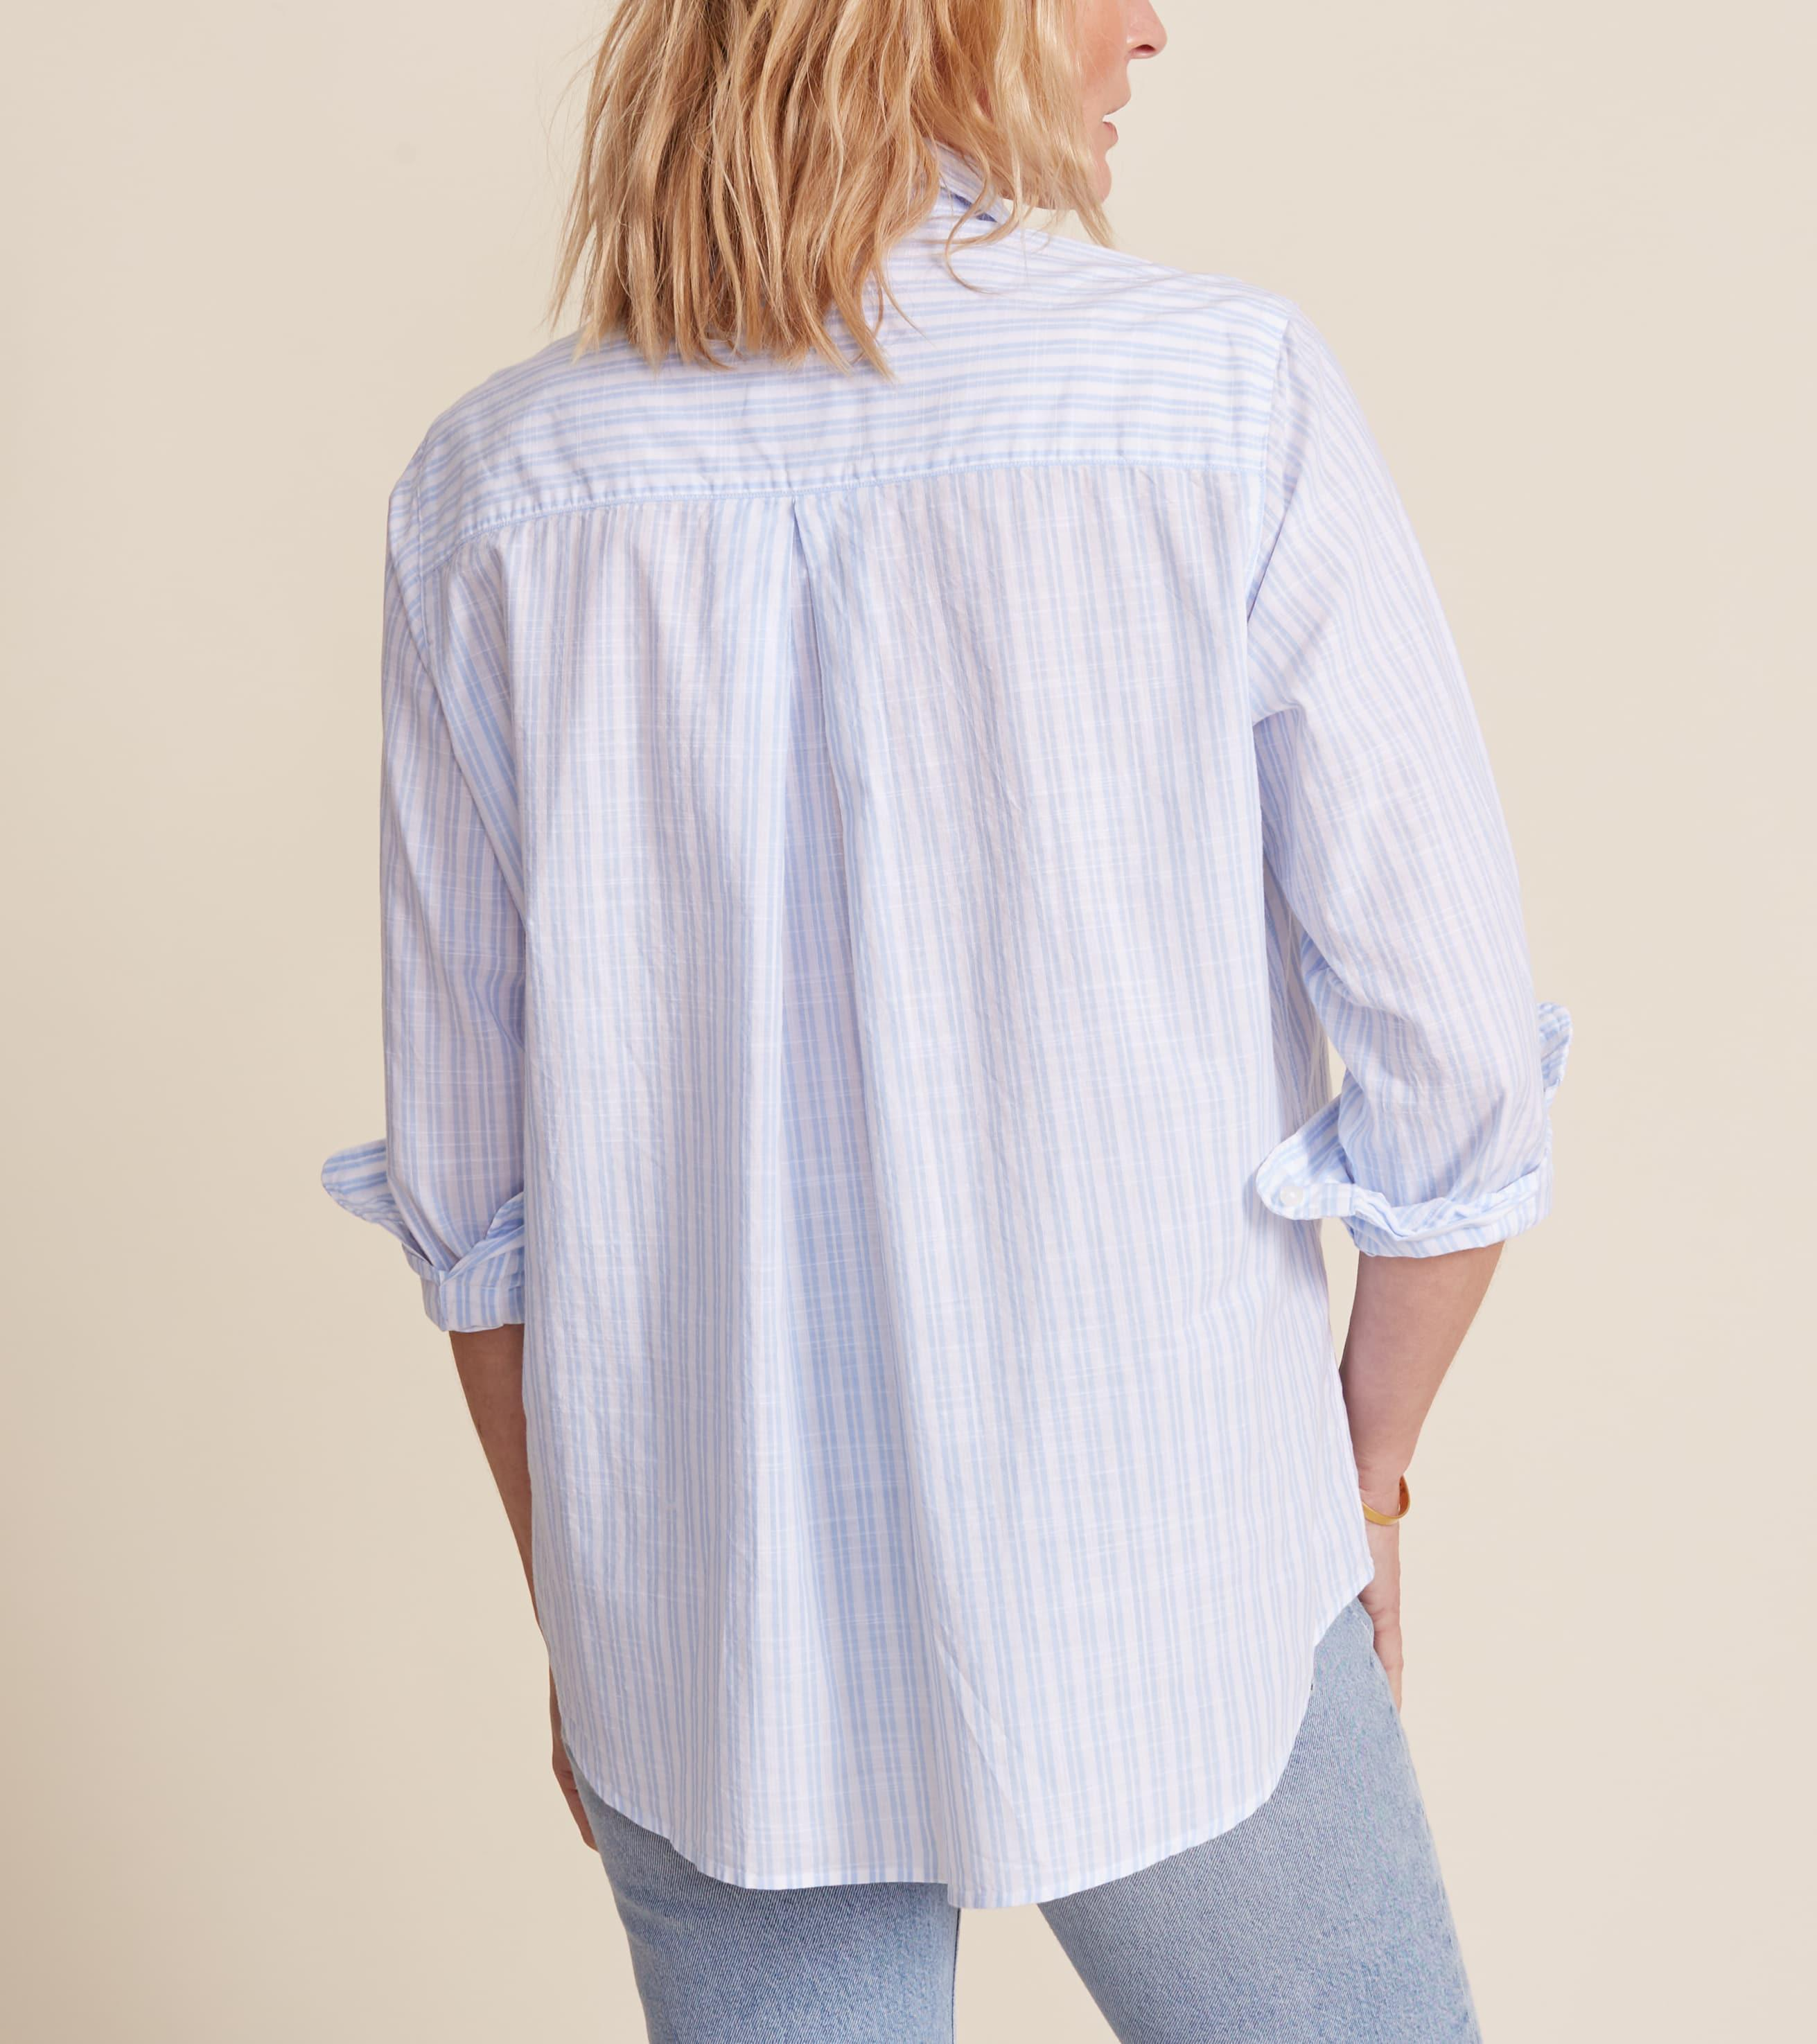 The Hero White with Double Blue Stripe, Washed Cotton Final Sale 1